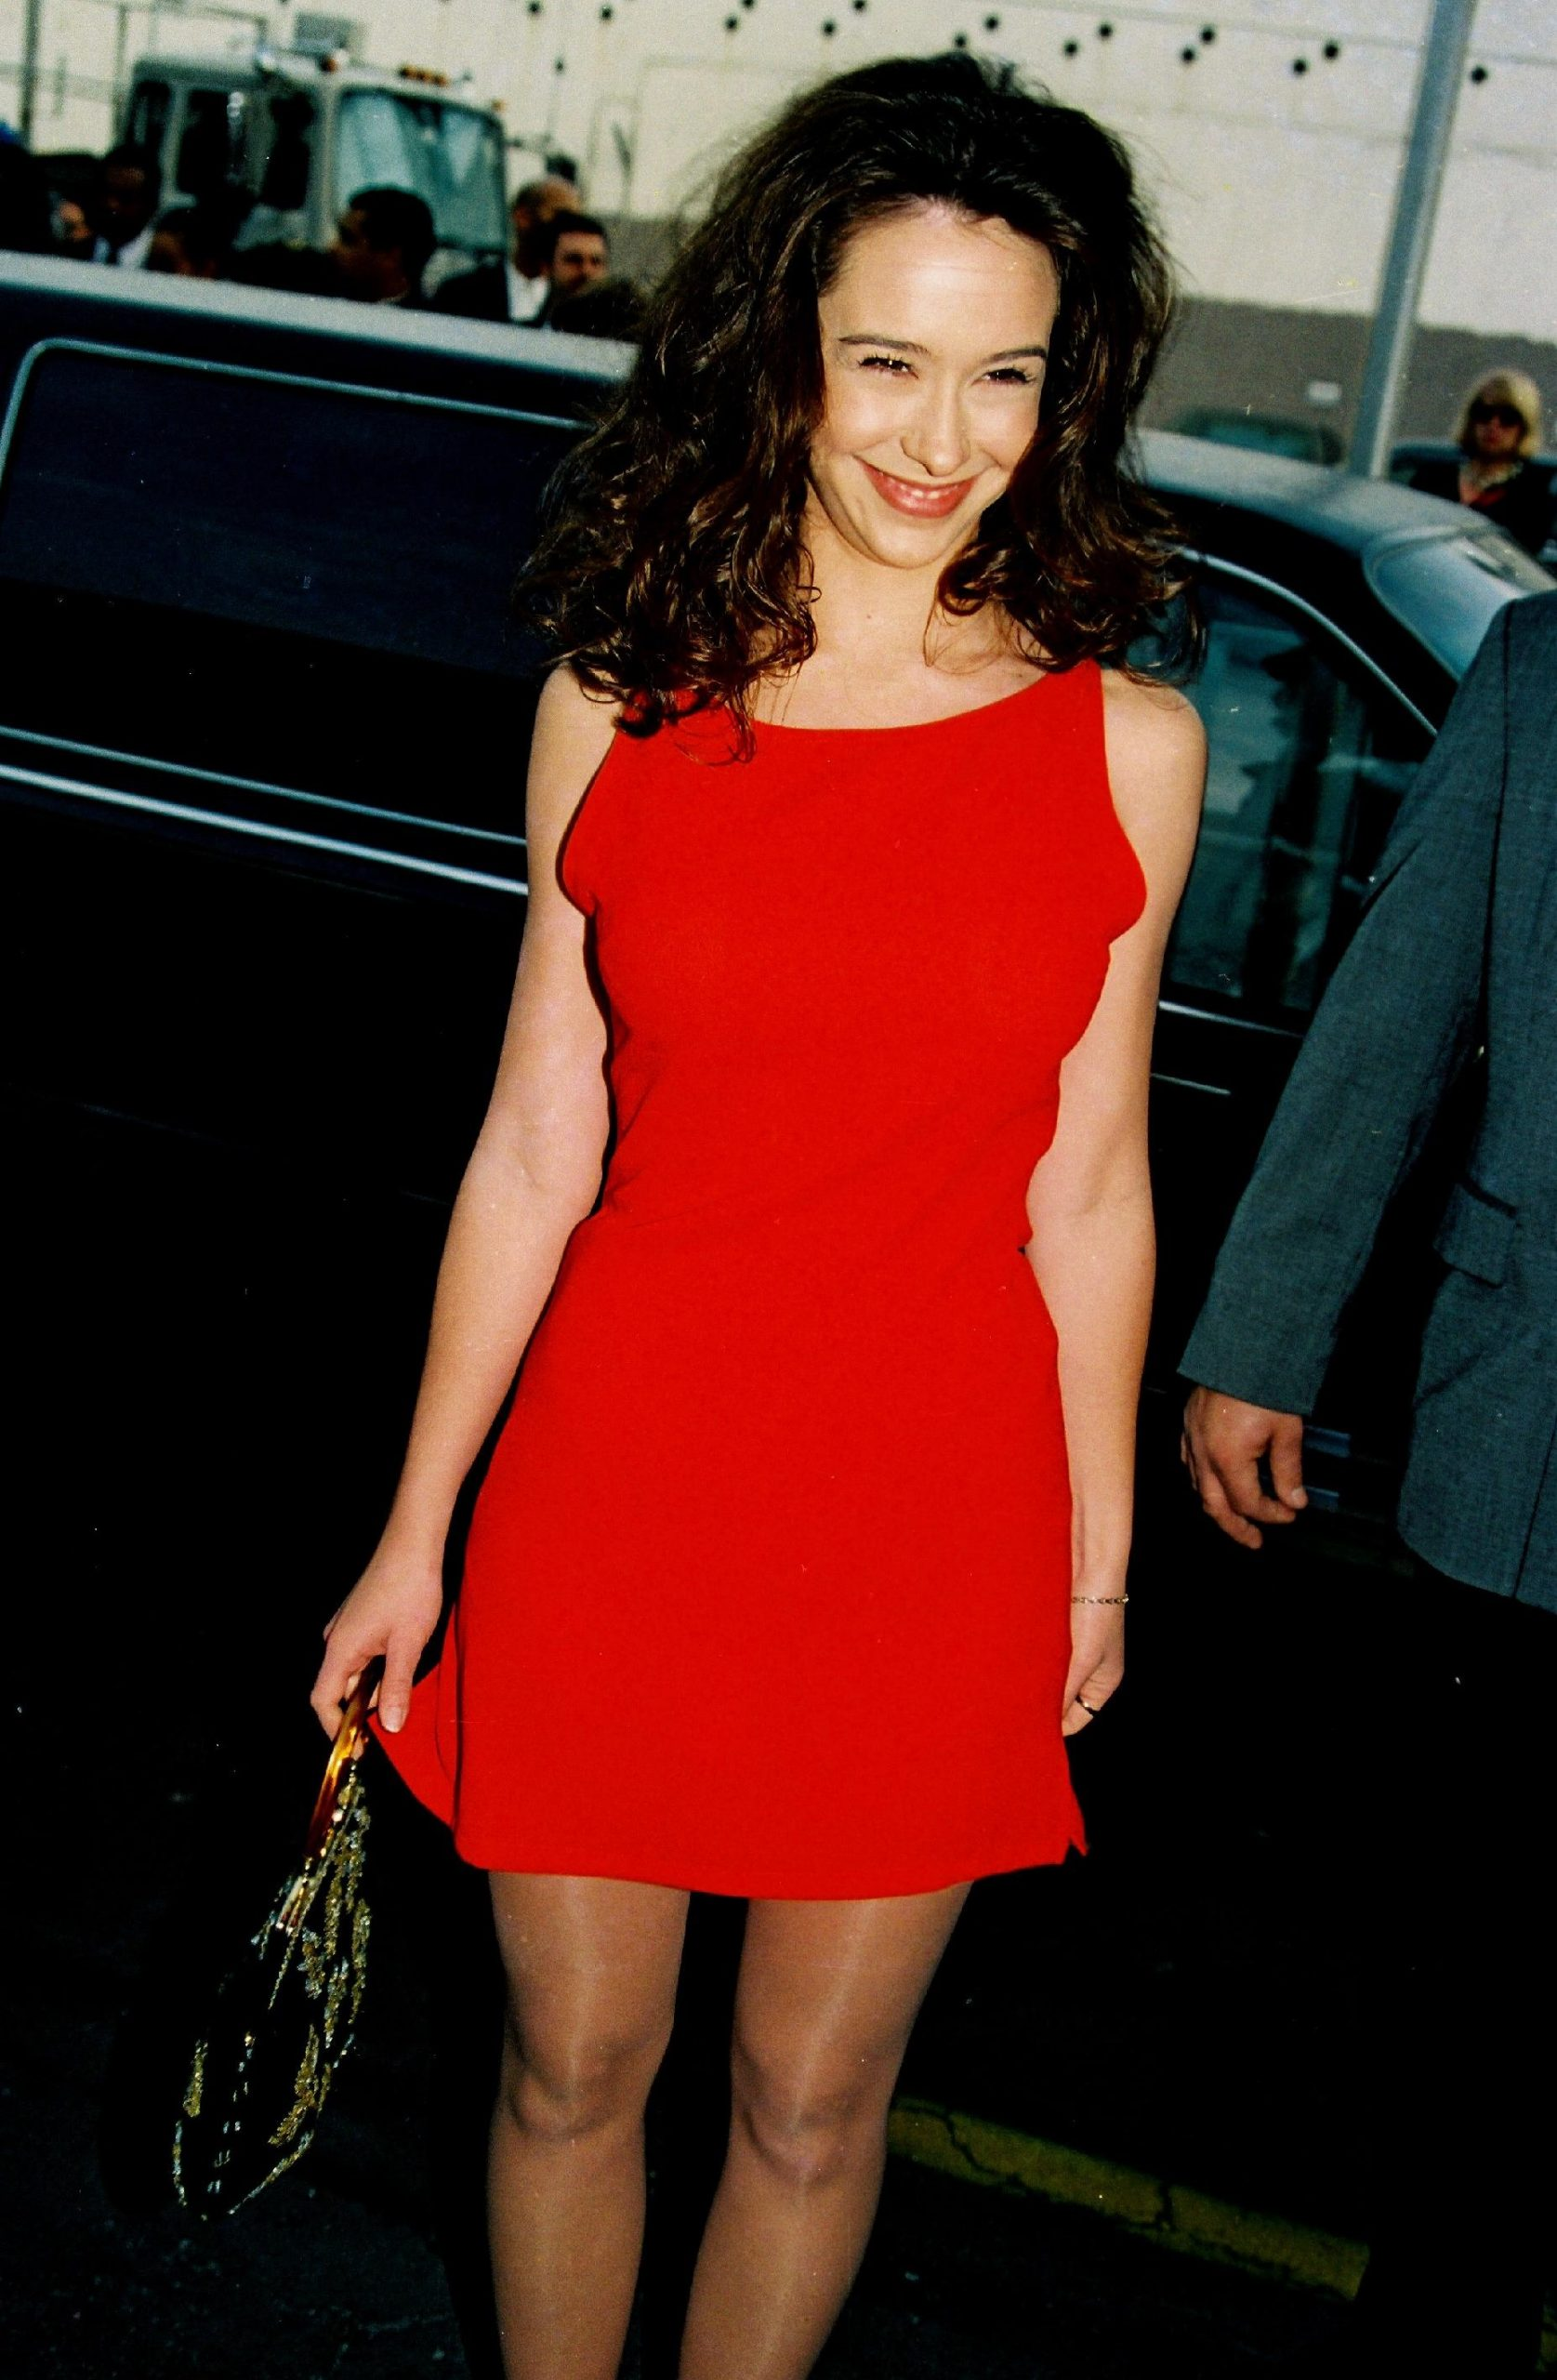 Sex symbol Jennifer Love Hewitt wears a red dress at the 23rd American Music Awards in 1996